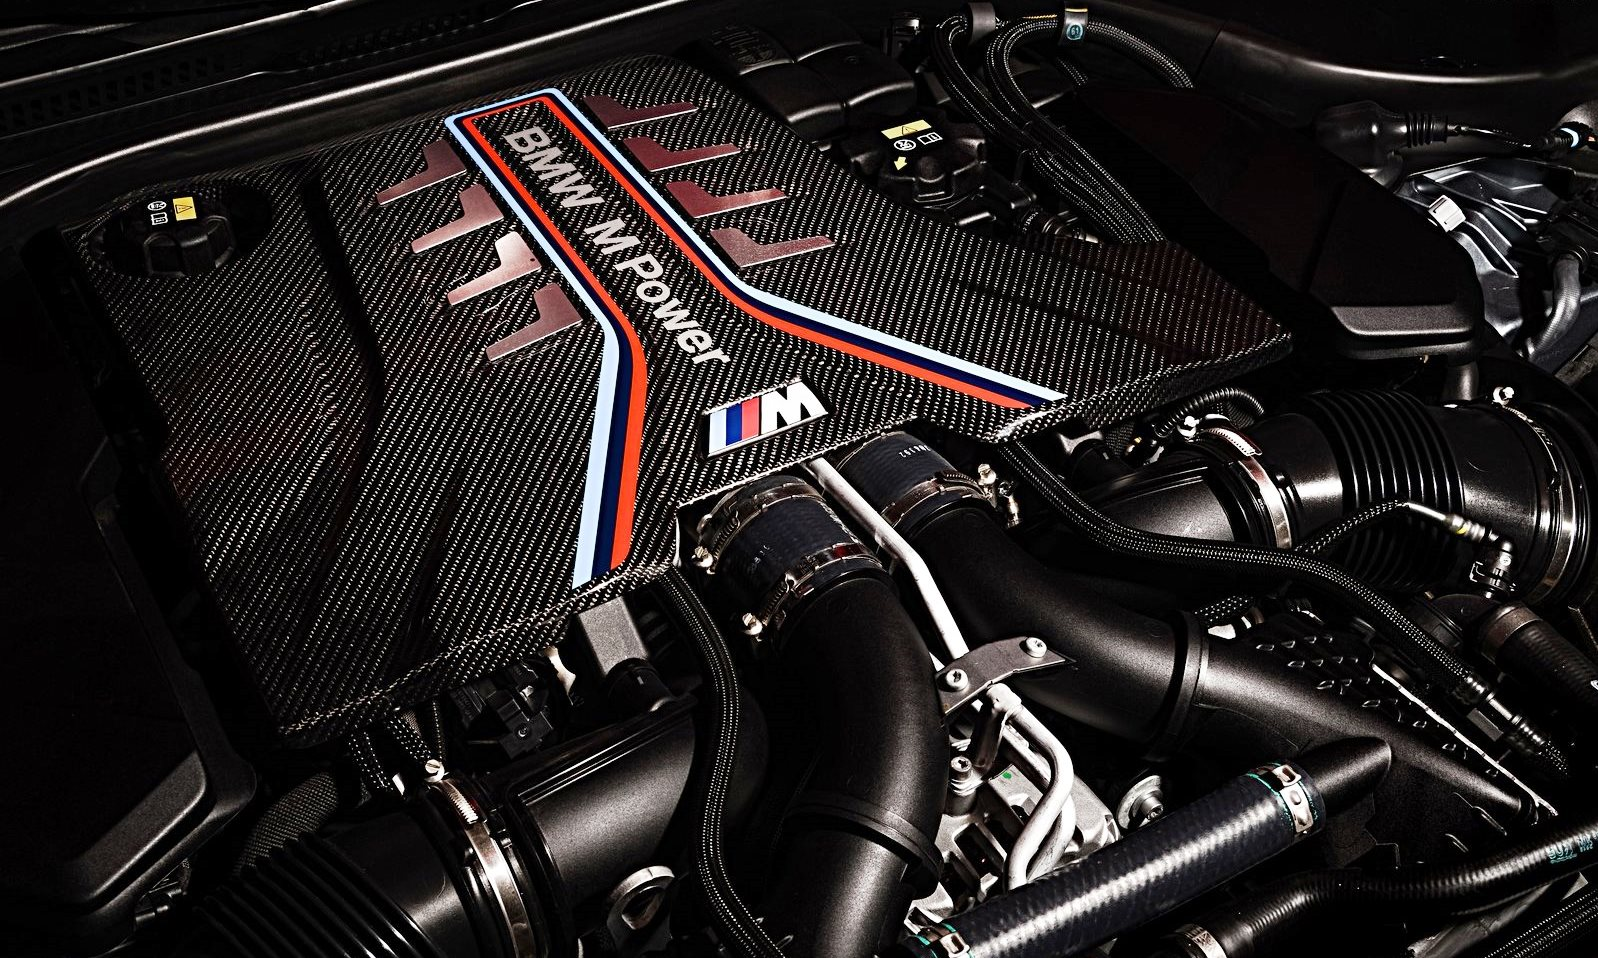 Facelifted BMW M5 engine